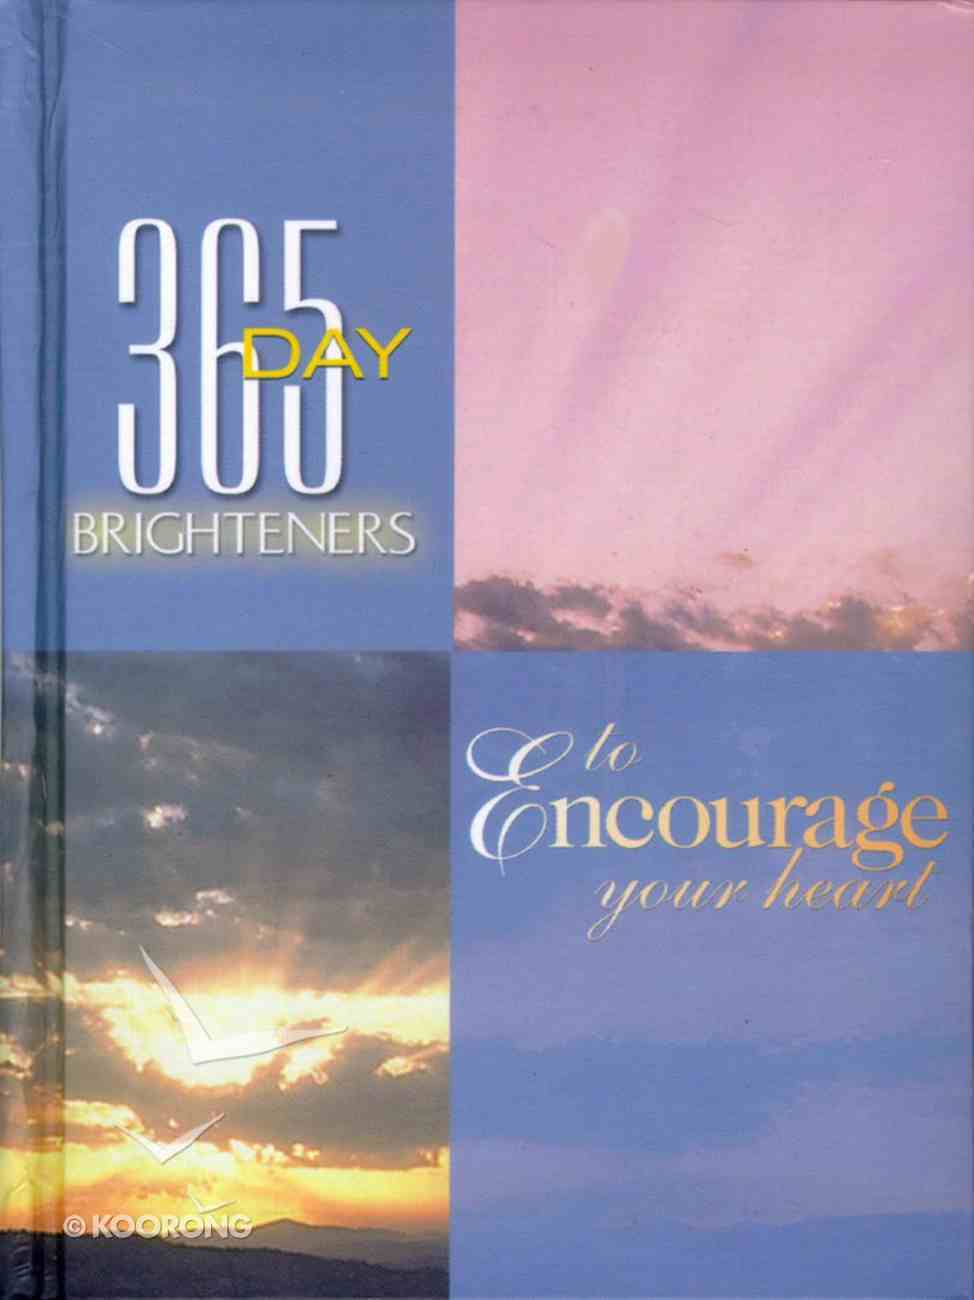 To Encourage Your Heart (365 Day Brighteners Series) Hardback